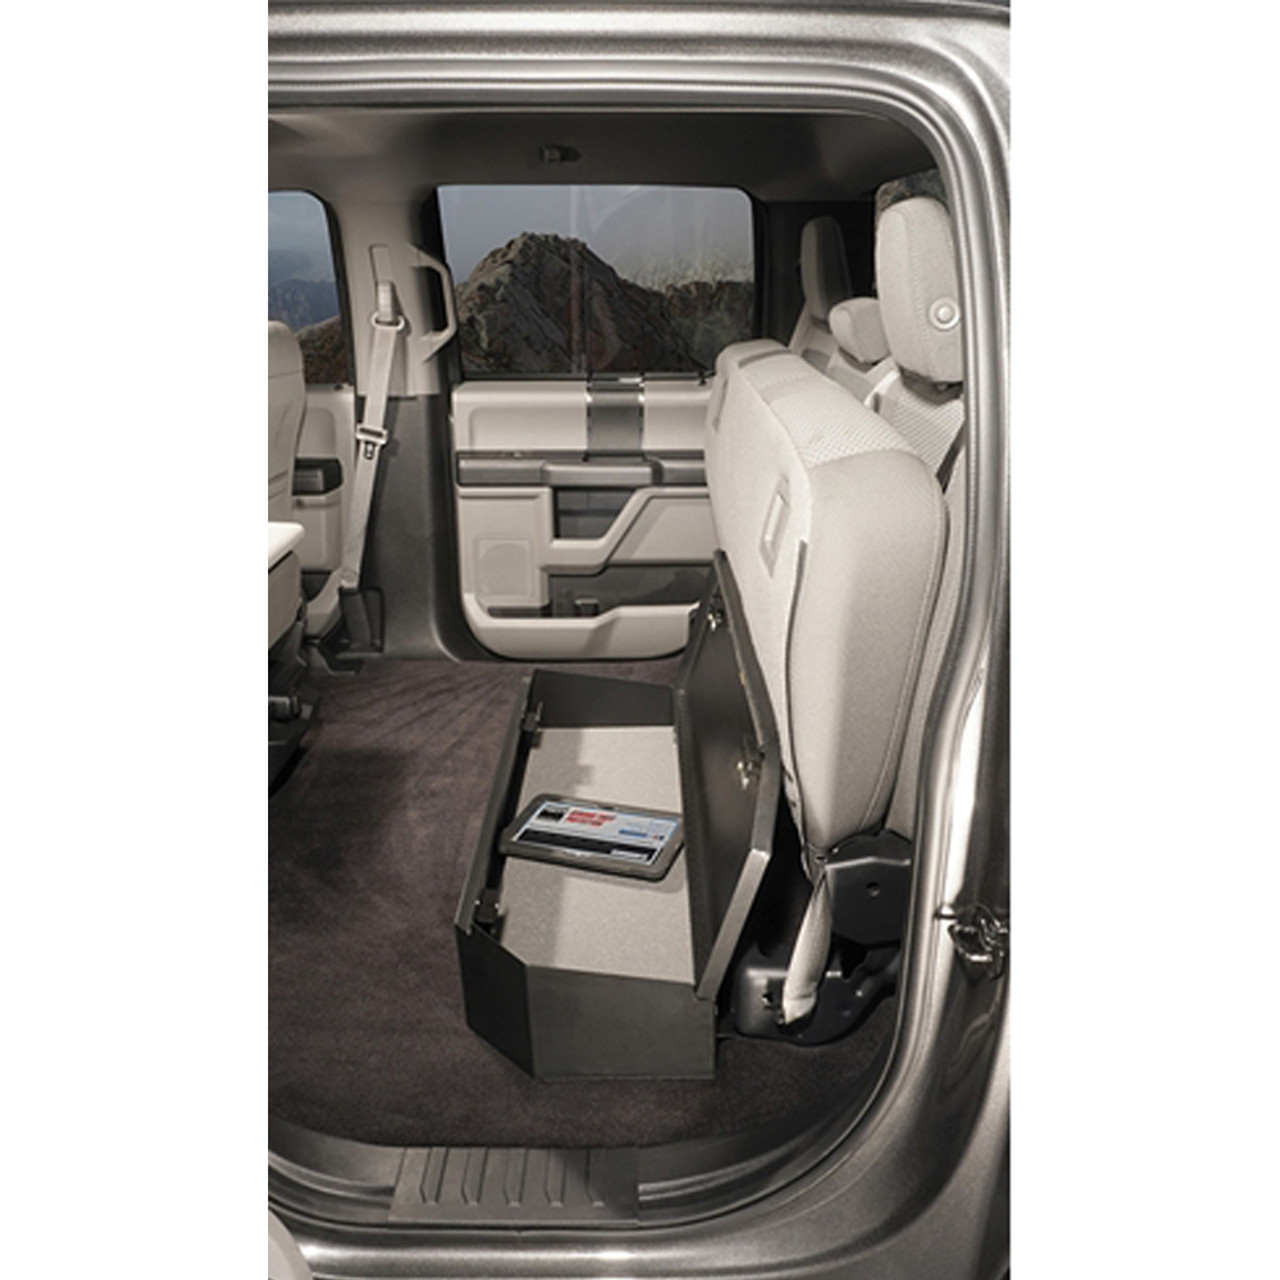 Tuffy Security 344-01 Ford F-Series SuperCrew CrewCab, 2015+ Under Rear 60 Percent Bench Seat Lock Box, 37x13x8,  Weather Resistant, Welded 16 Gauge steel construction, Durable texture powder coat finish